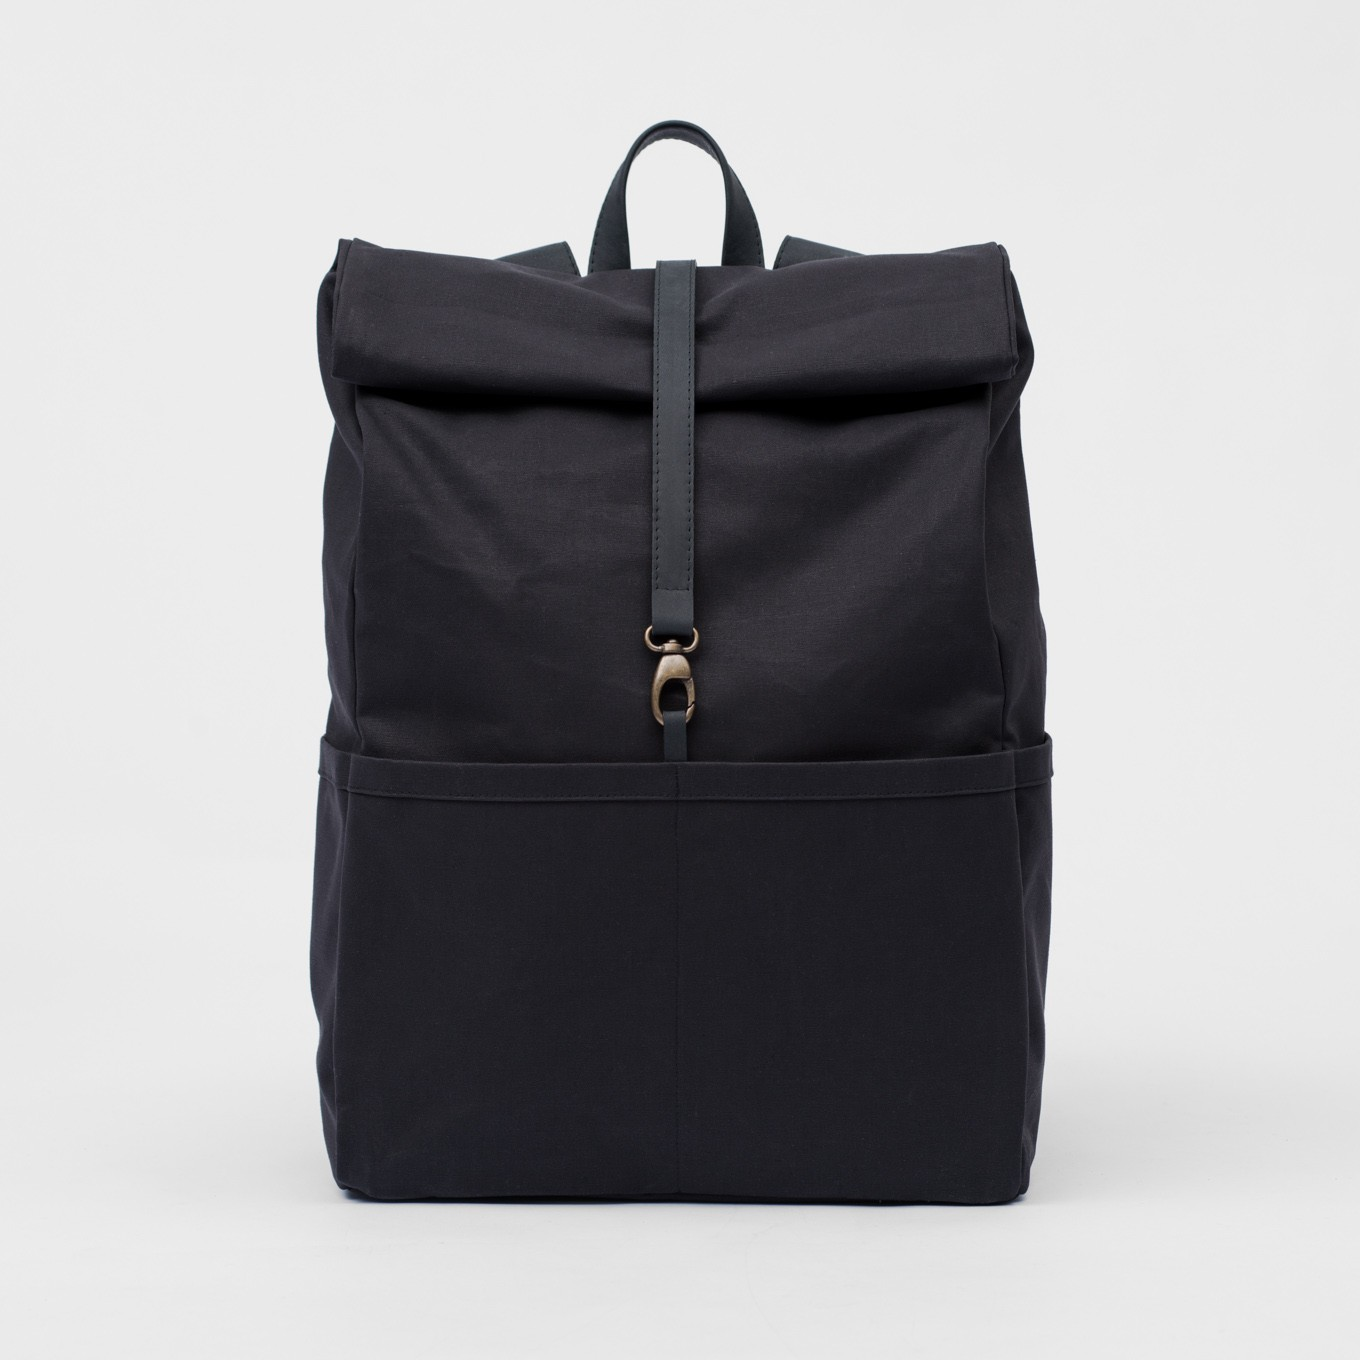 73_Backpack-Coated- Cotton-Leather-Integrated Laptop Case